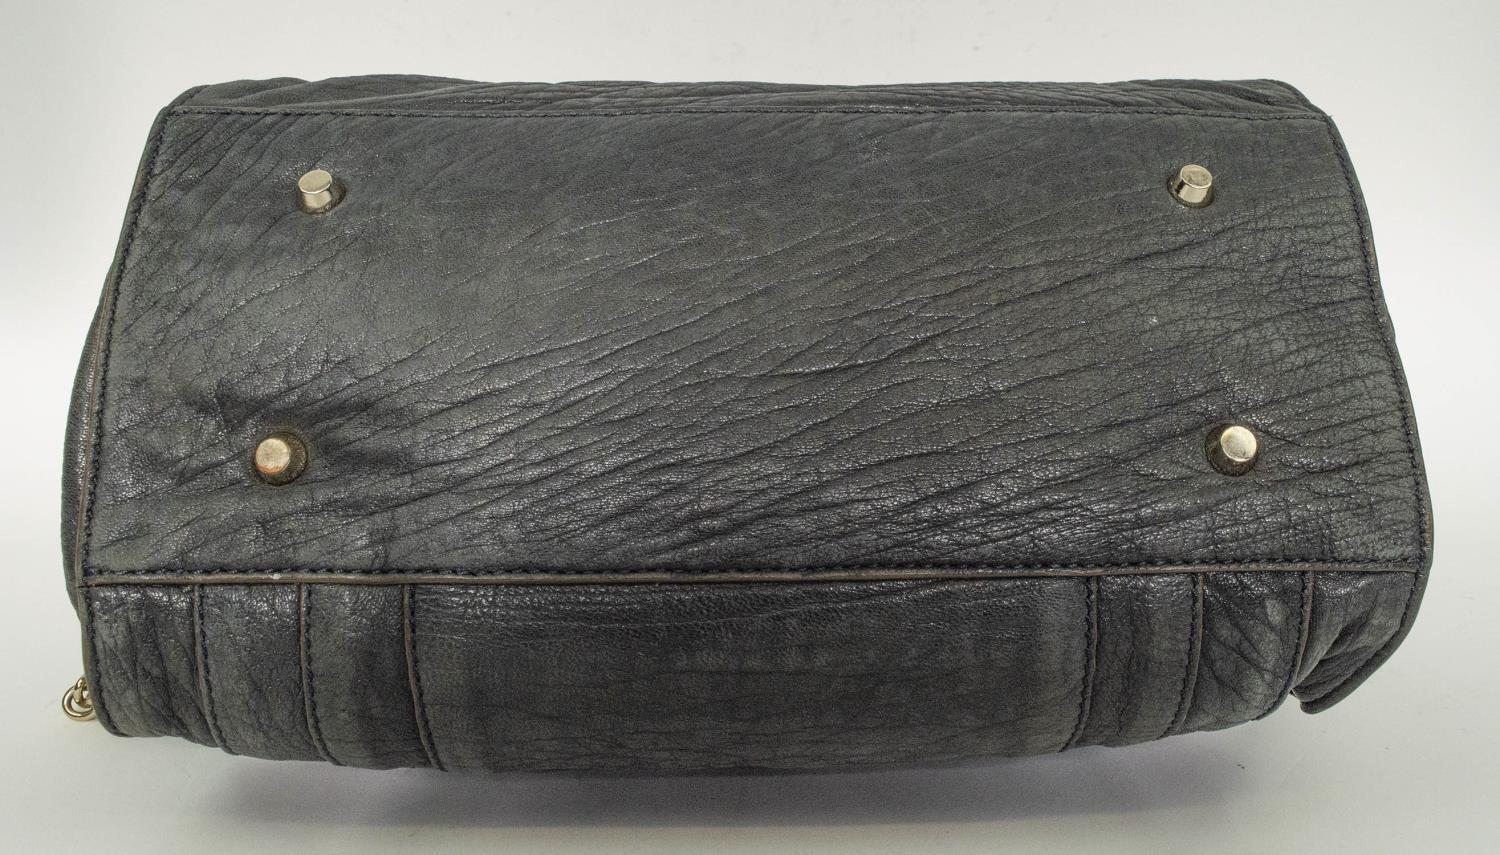 ANYA HINDMARCH SHOULDER BAG, leather with leather and chain strap, gun metal and silver hardware, - Image 6 of 9